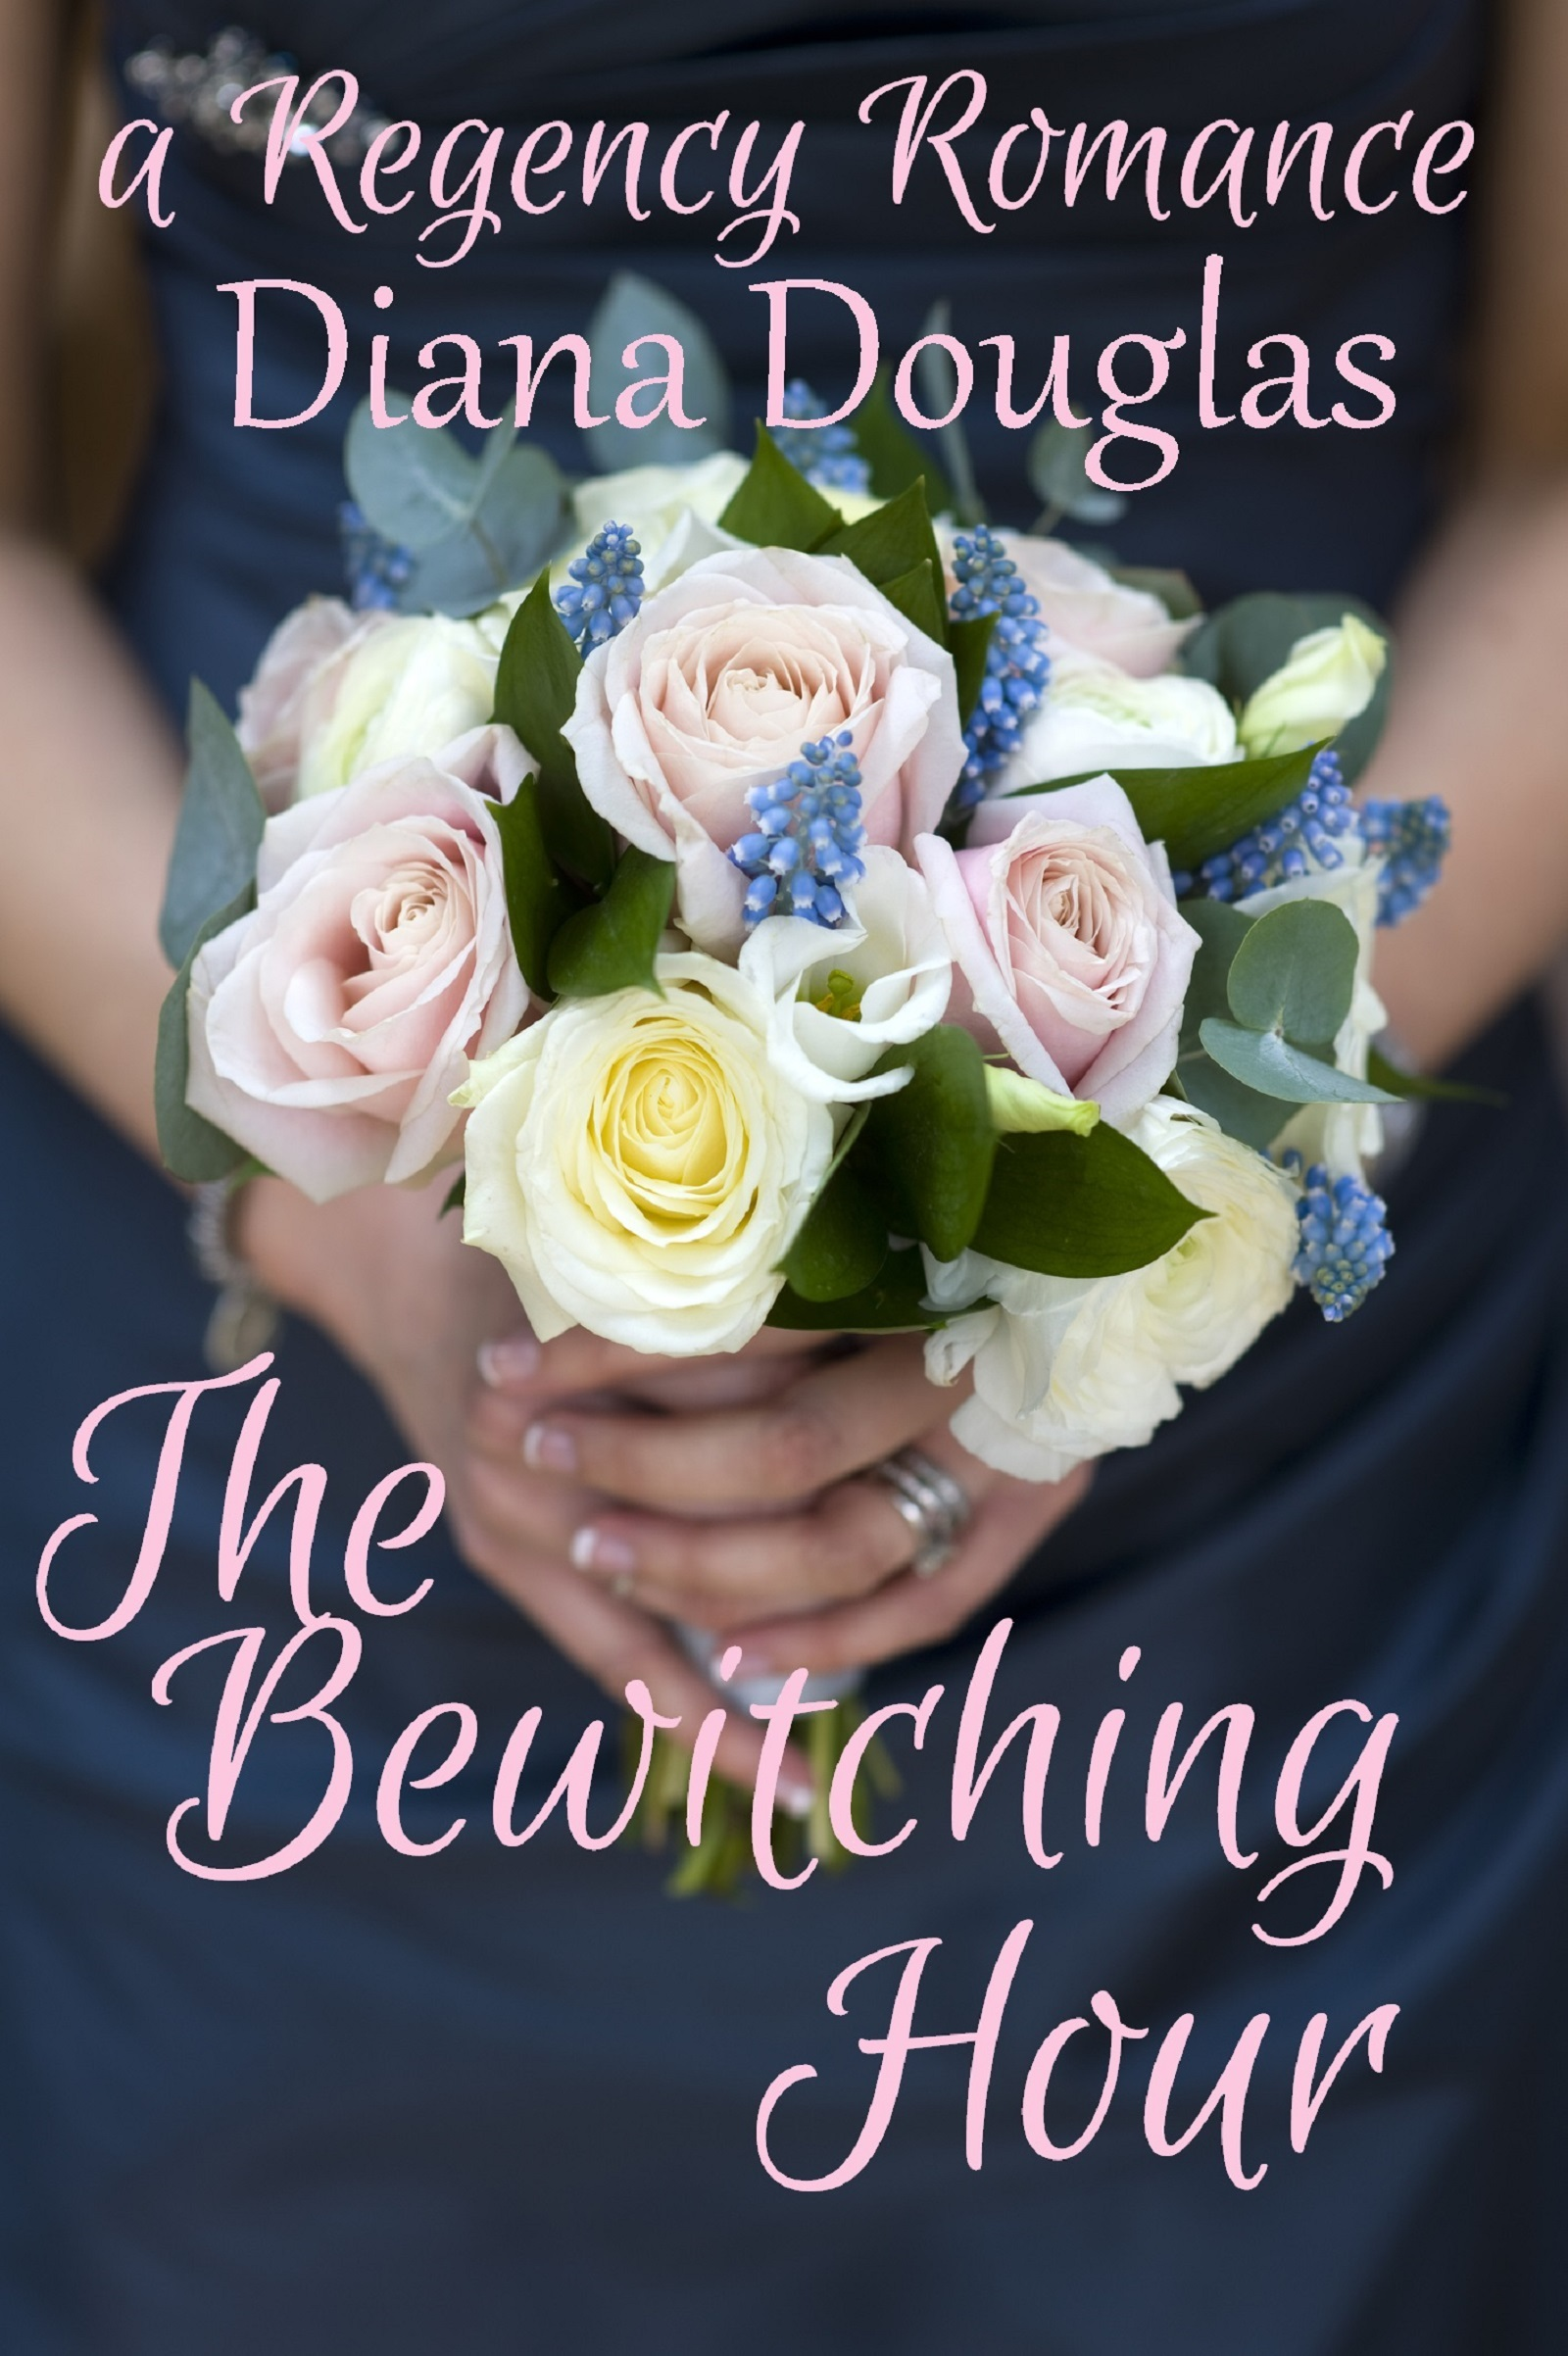 Diana Douglas - The Bewitching Hour